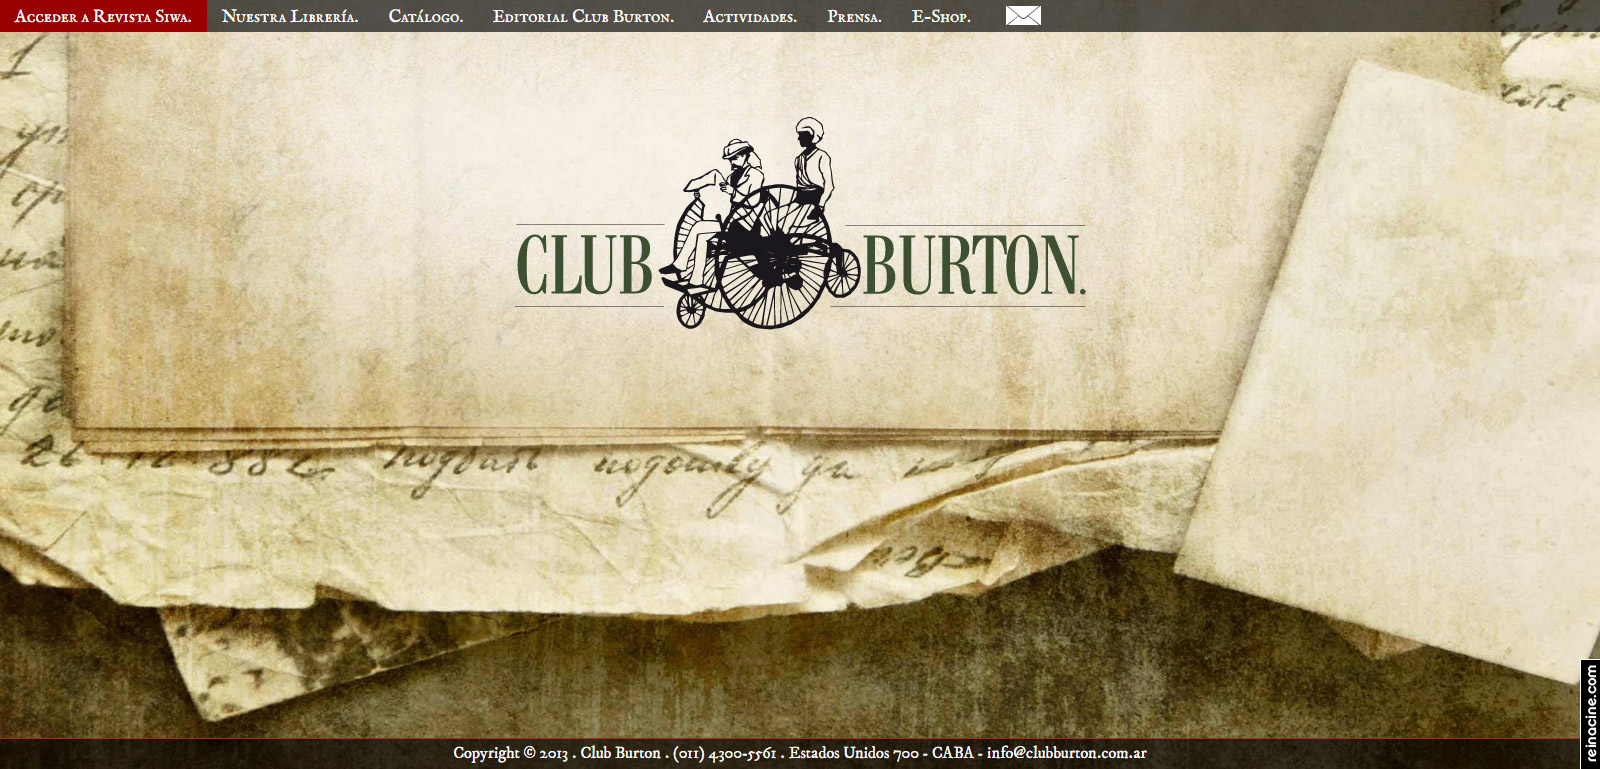 Club Burton.